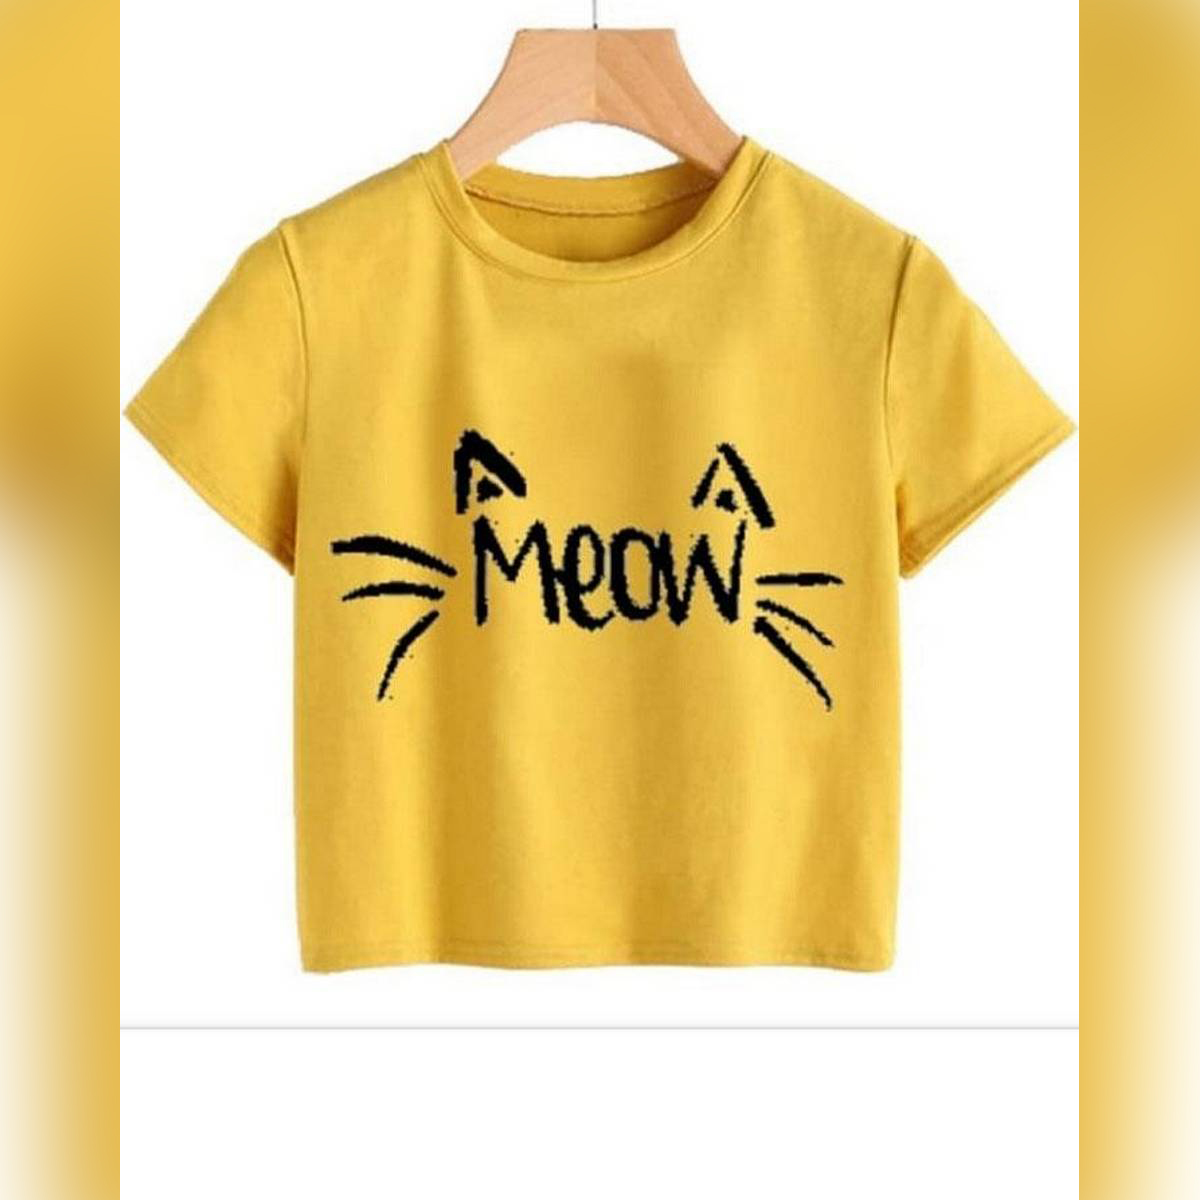 YELLOW MEOW CROPPED TOP FOR WOMEN